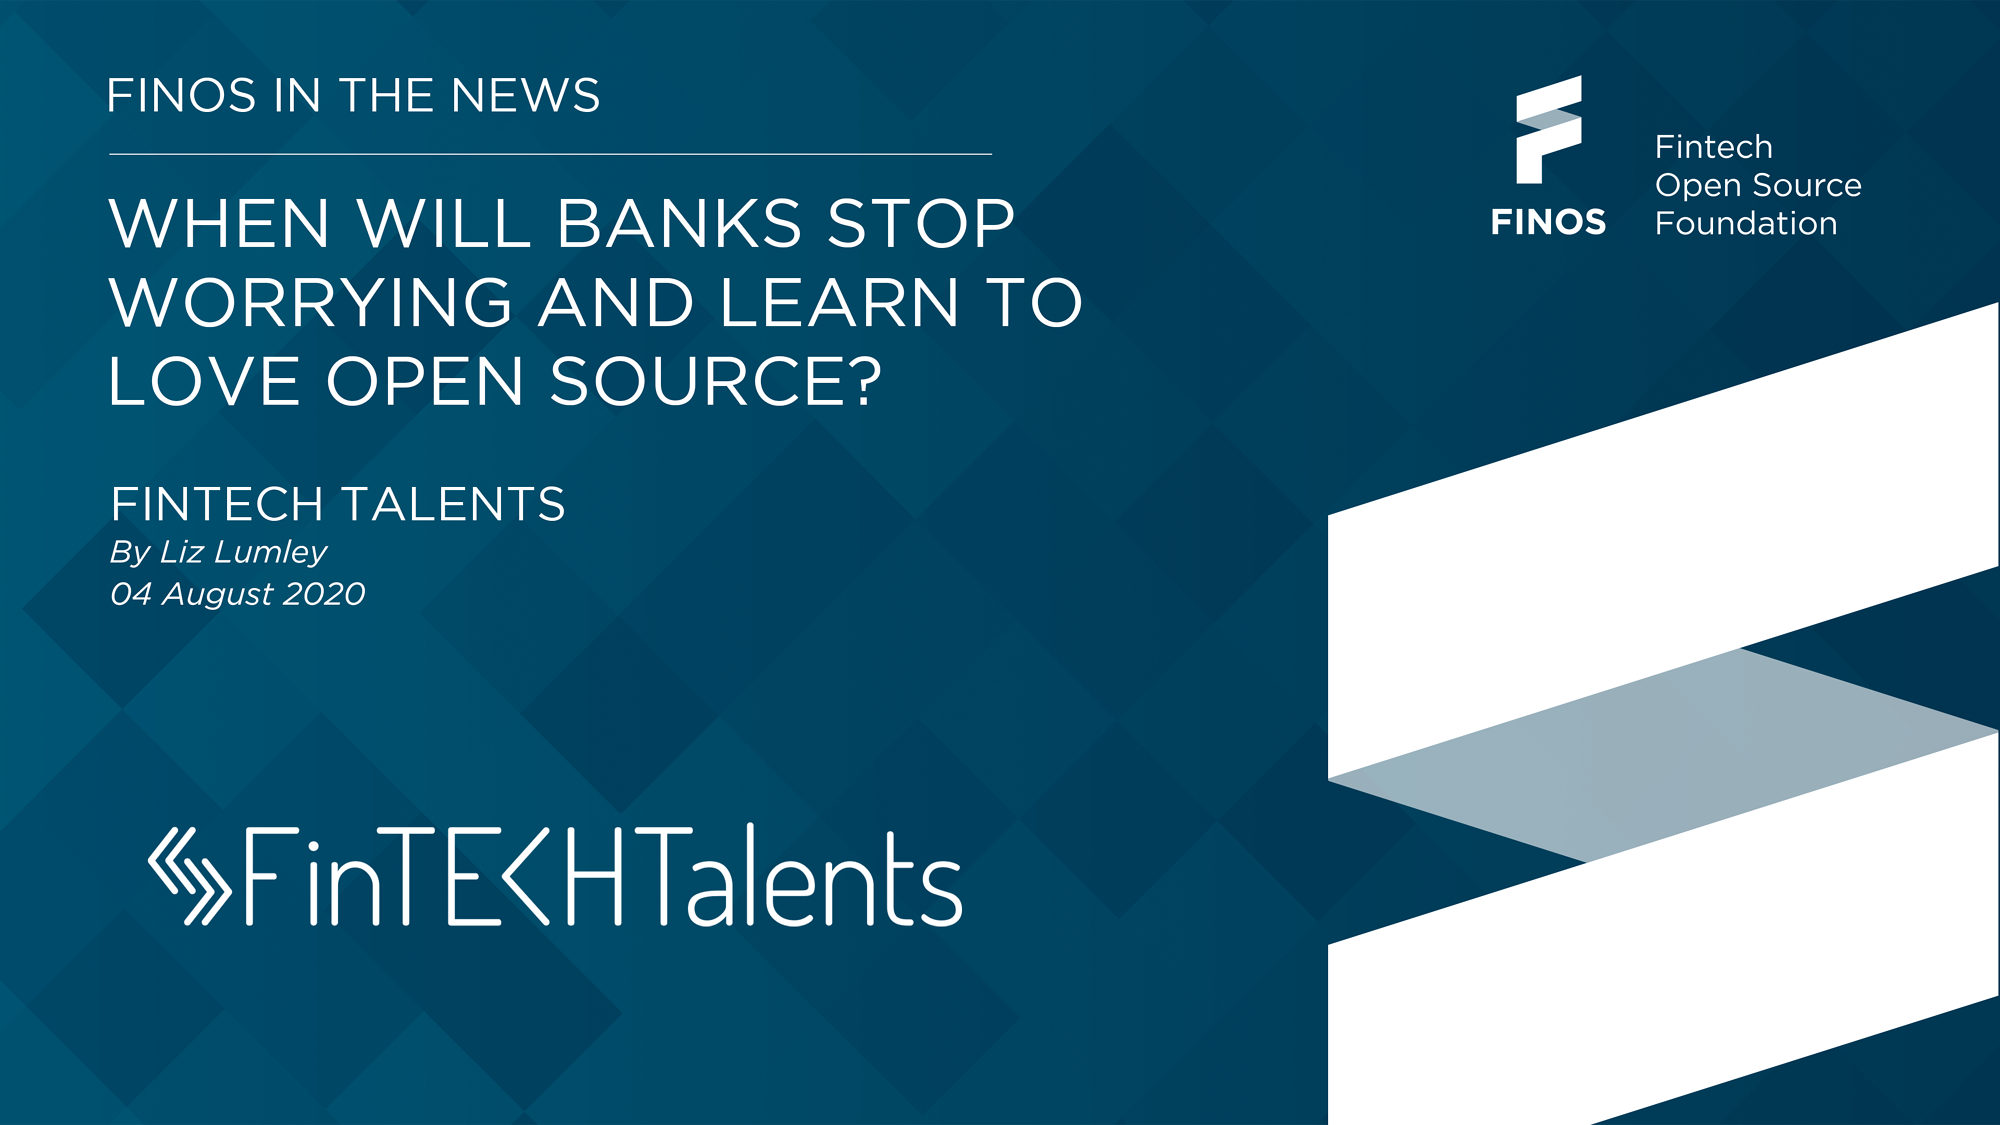 FINOS-in-the-news-fintechtalents-aug20